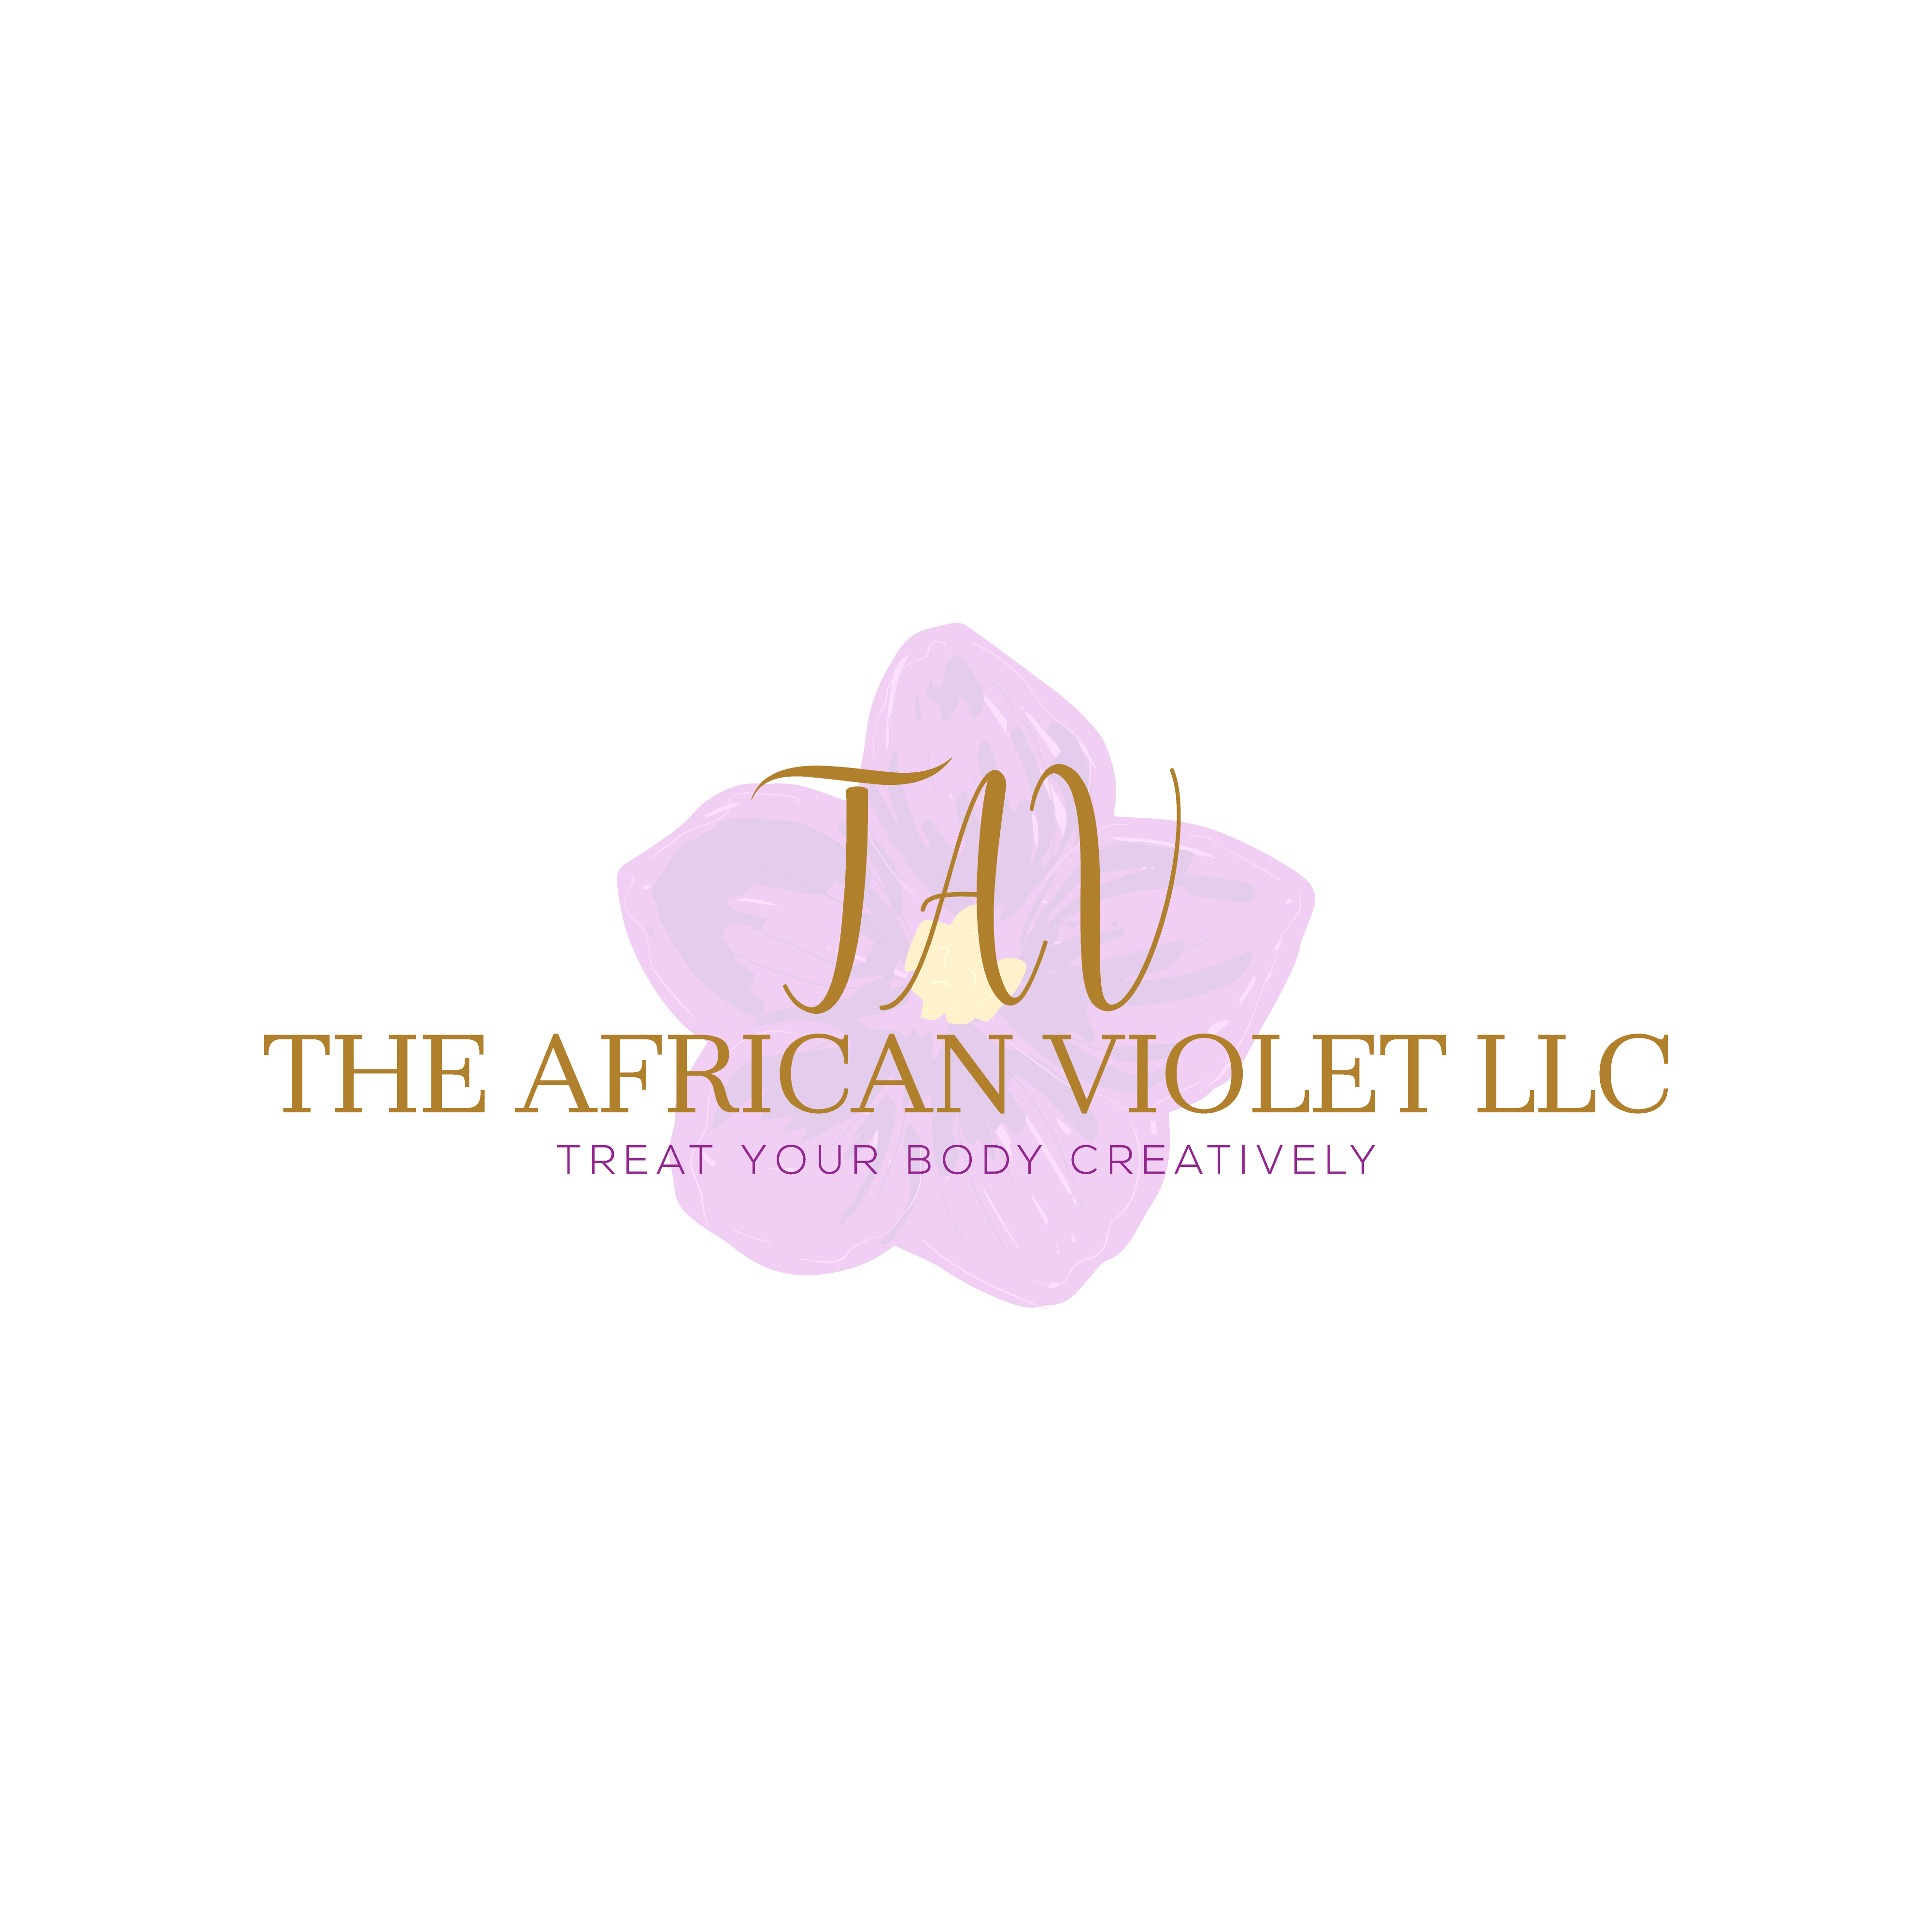 The African Violet, LLC